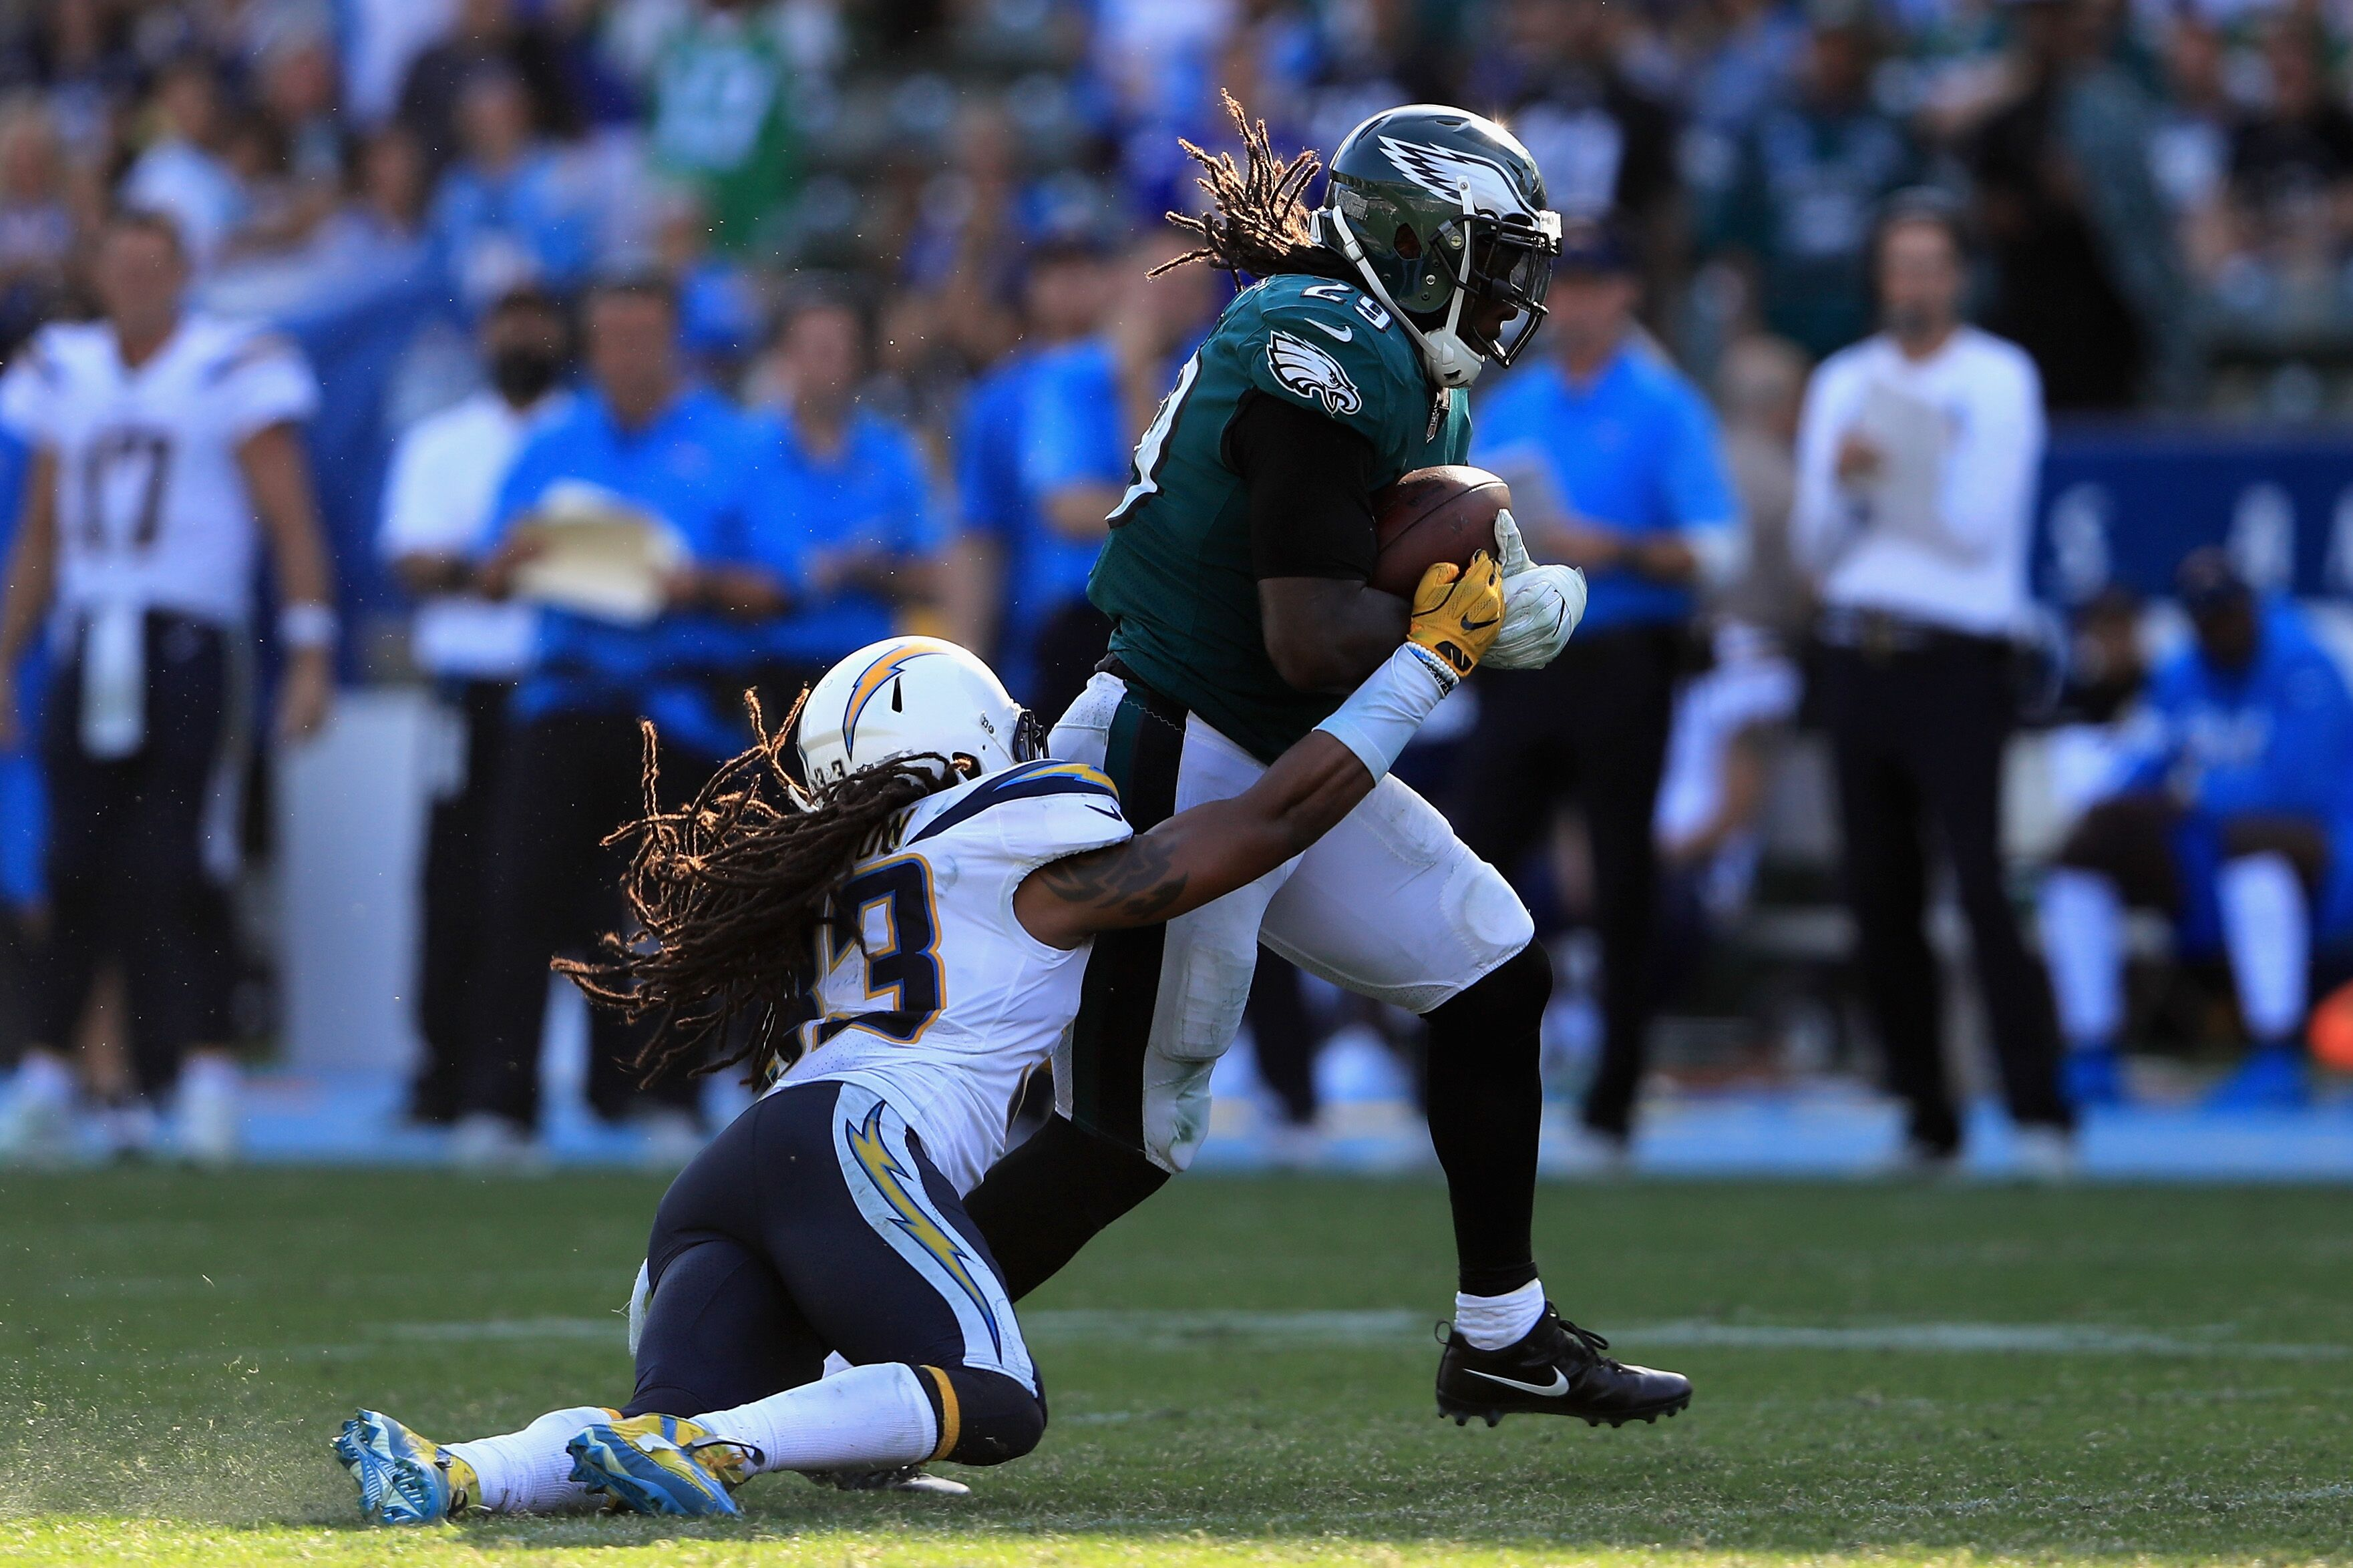 856426912-philadelphia-eagles-v-los-angeles-chargers.jpg